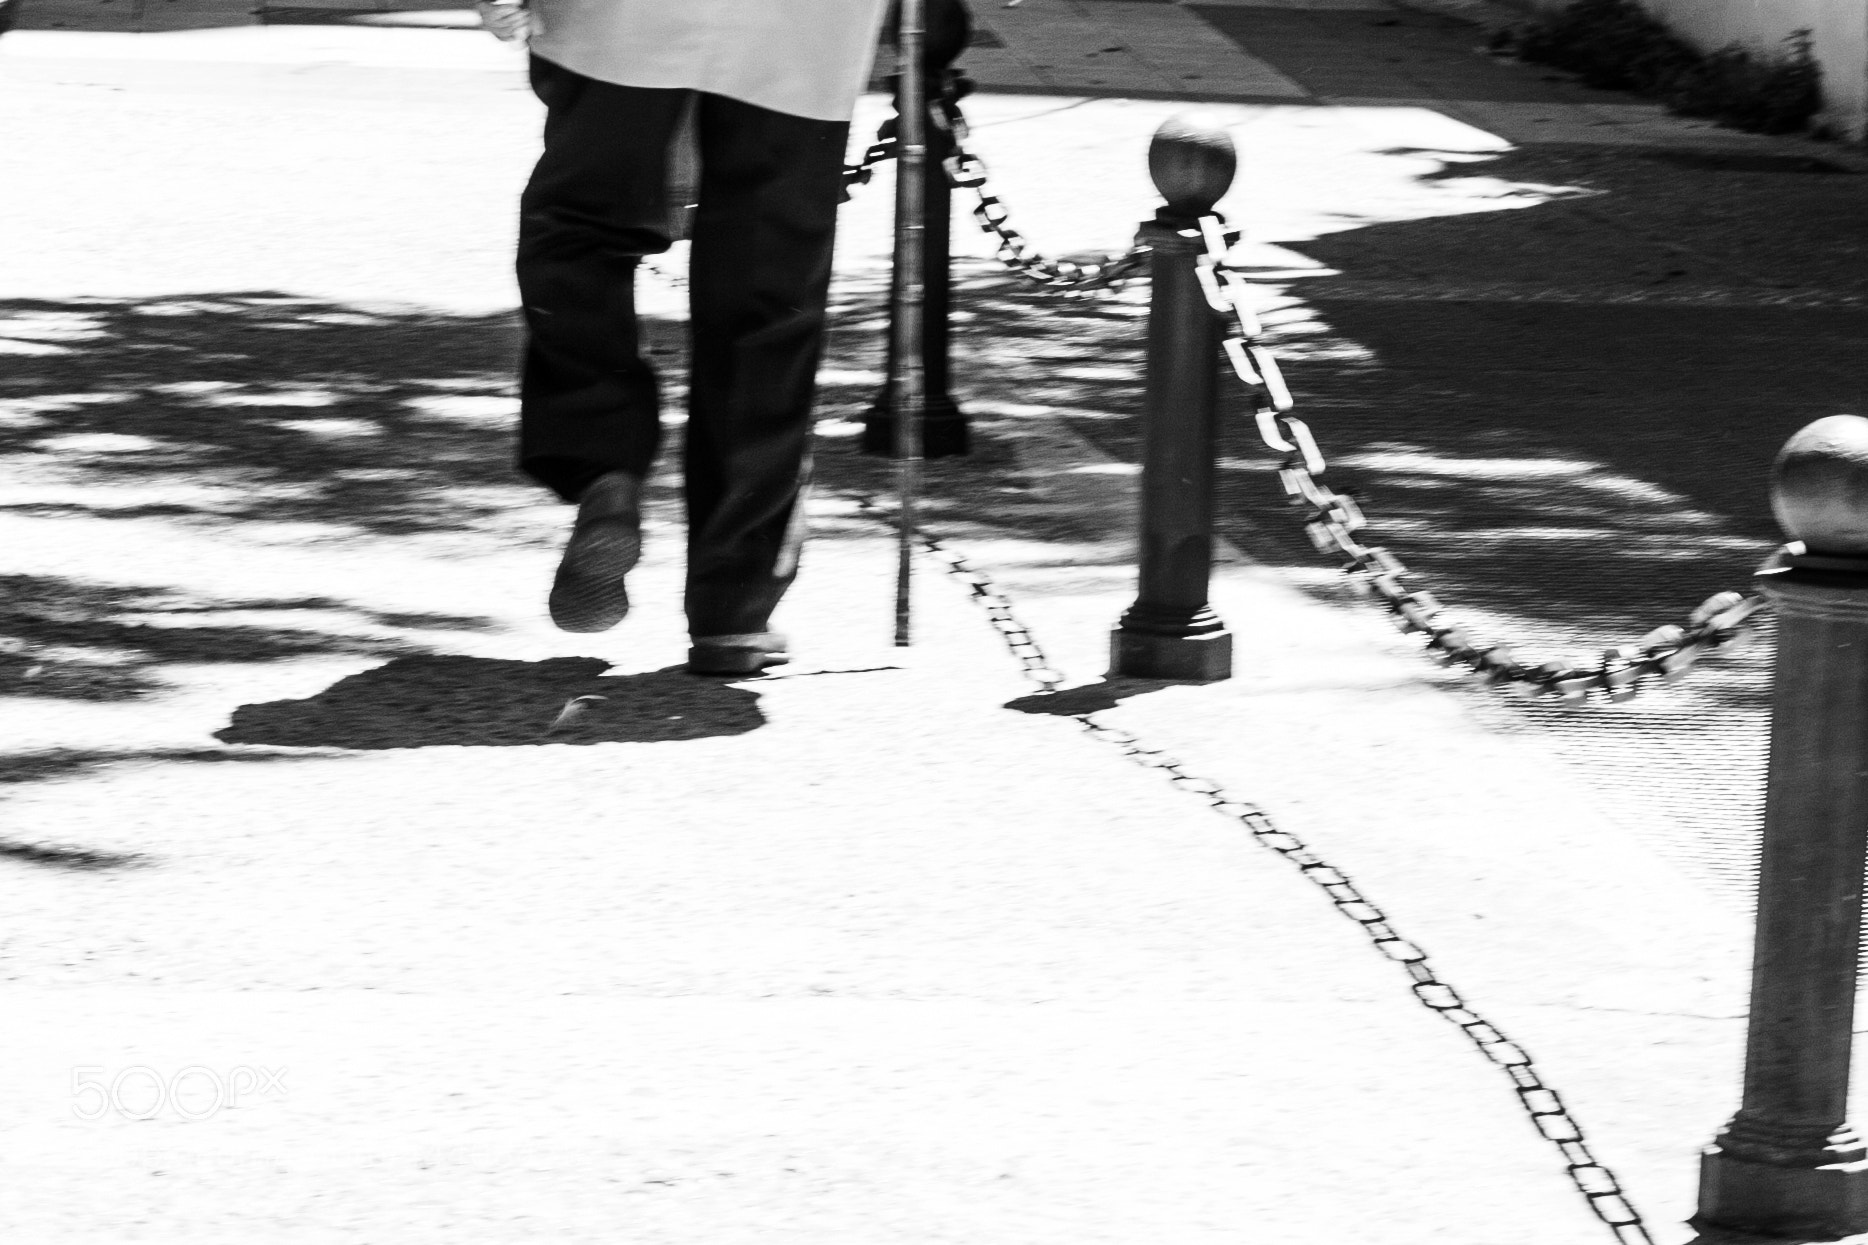 Photograph walking to the end by Rebeca Moncho on 500px